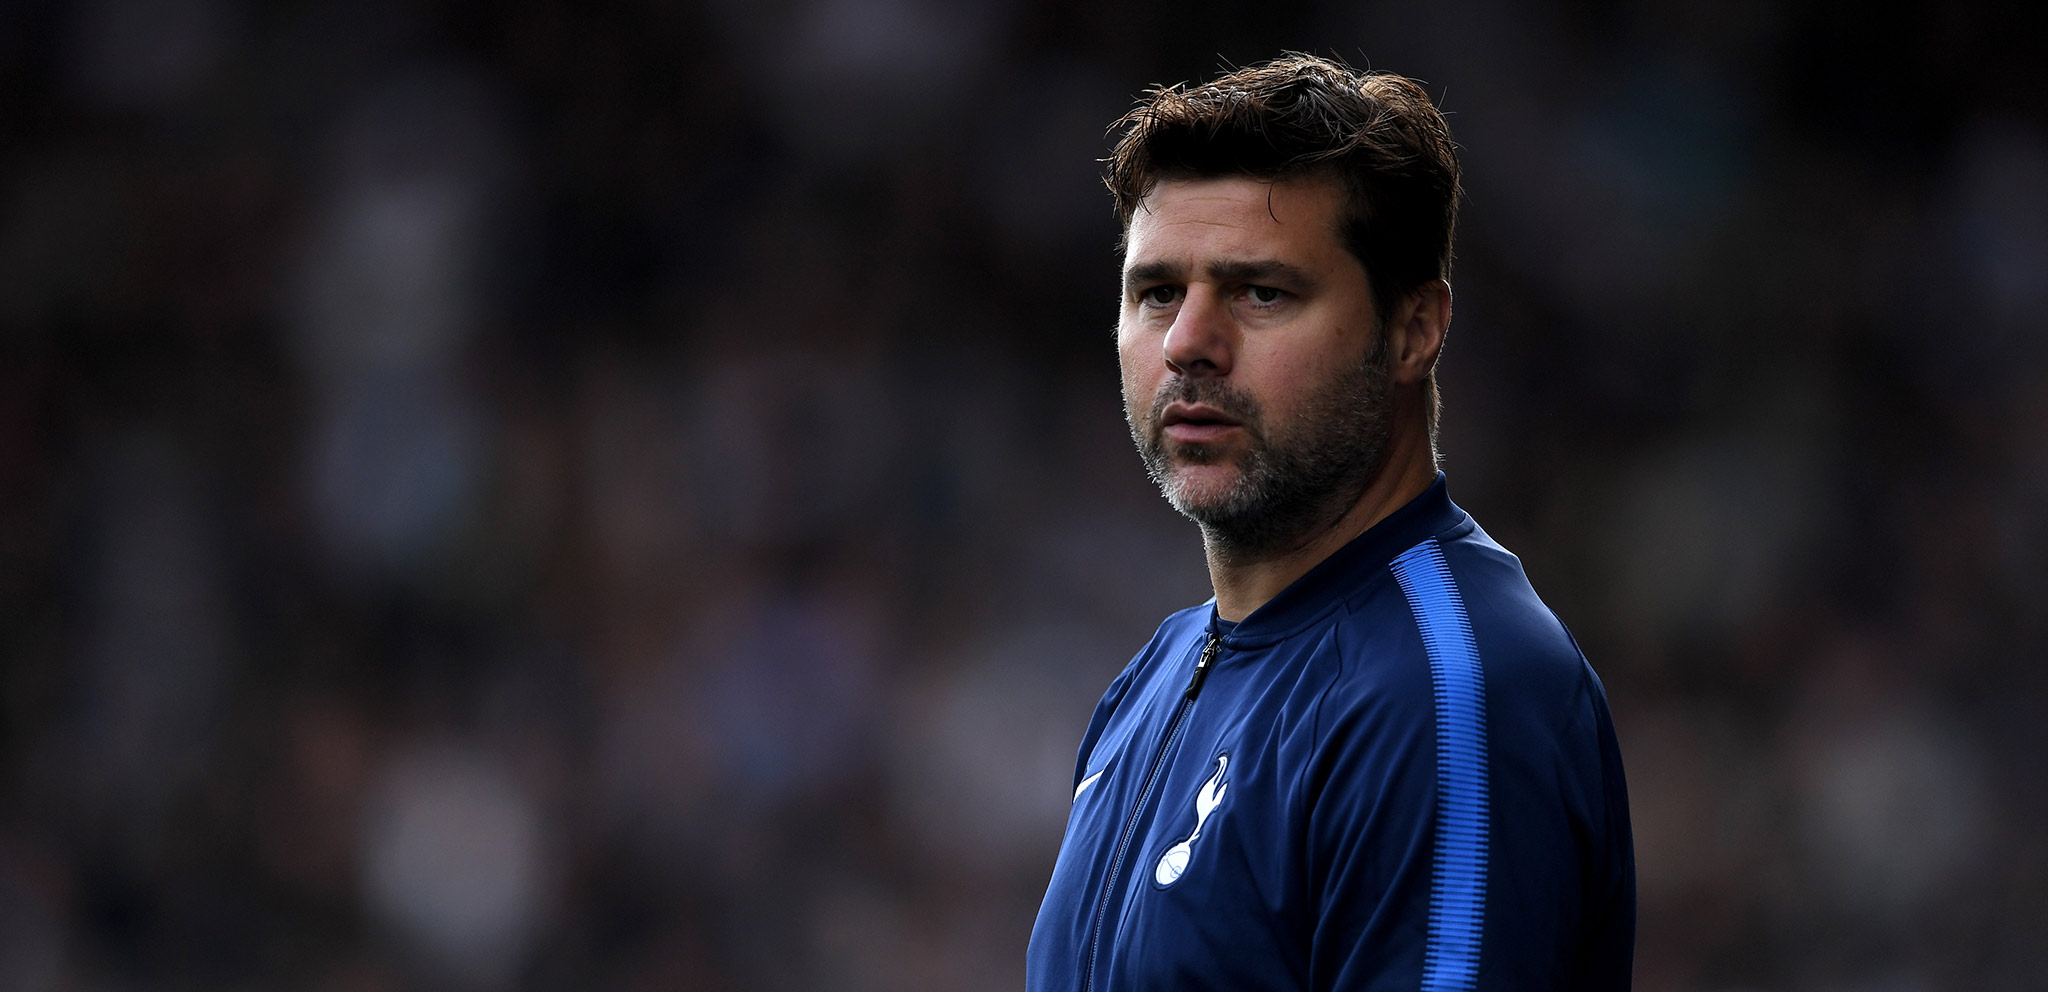 Moussa Sissoko hints that Mauricio Pochettino could leave Tottenham this summer - Bóng Đá